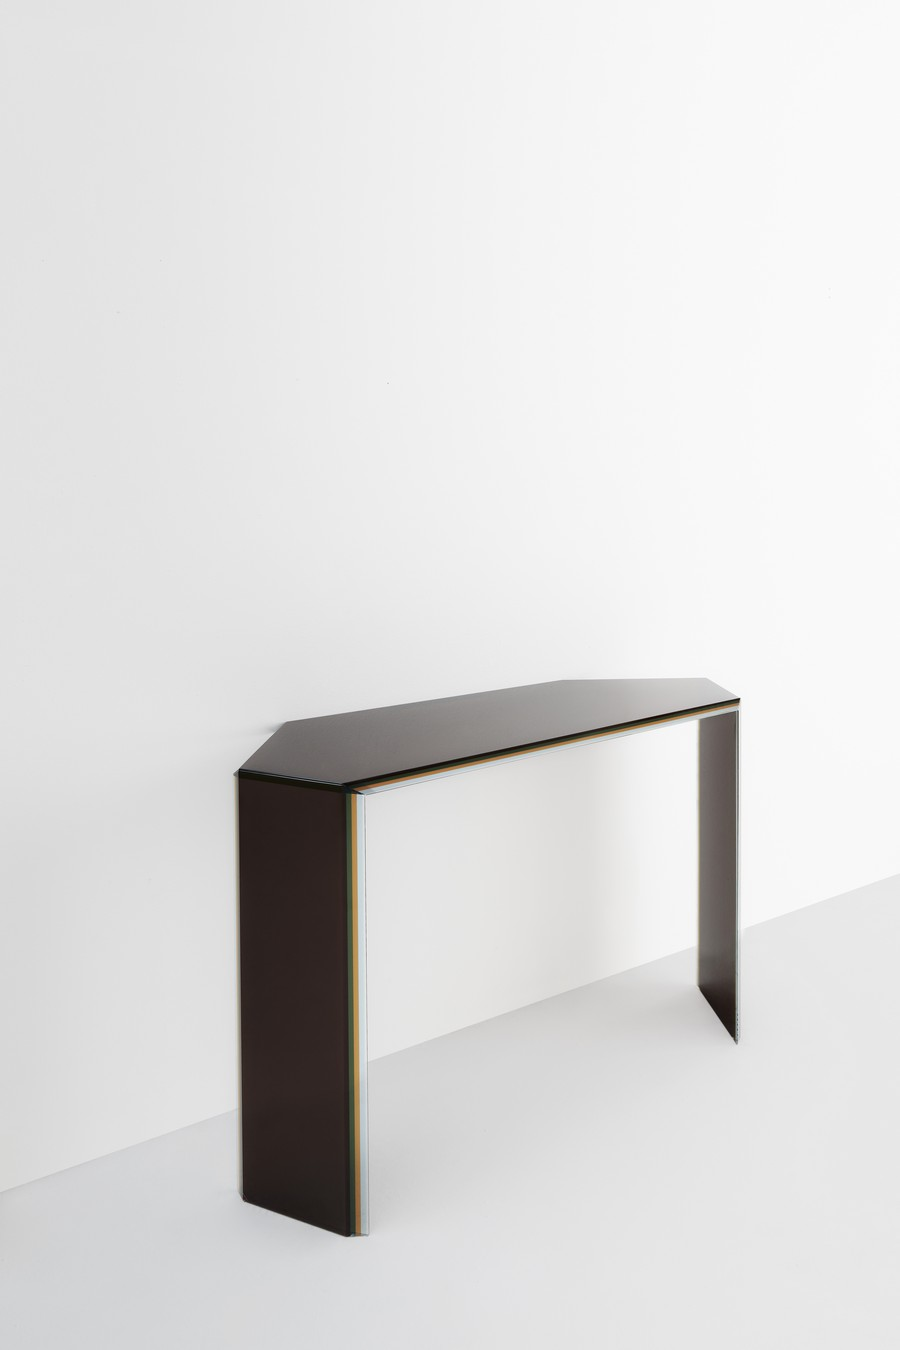 milan design week Milan Design Week: the novelties from some top brands (Part 1) BISEL console PatriciaUrquiola 01